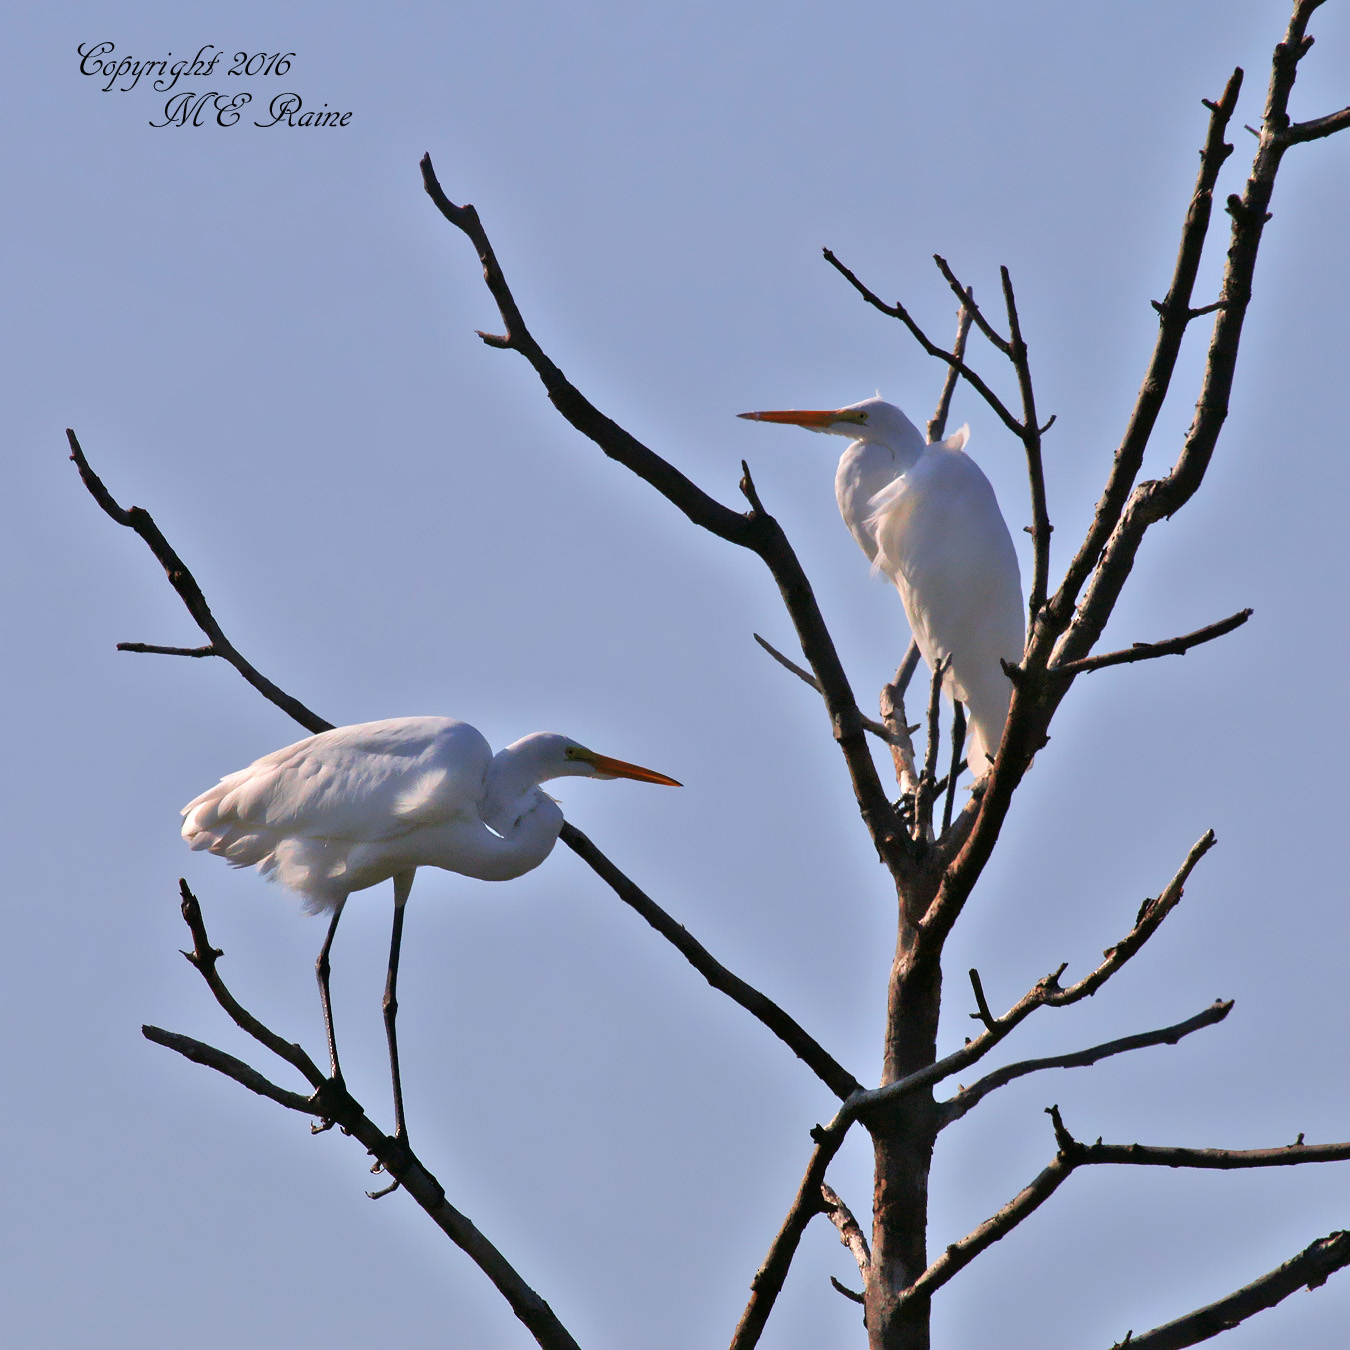 great-egrets2-dekorte-mickey-9-3-16